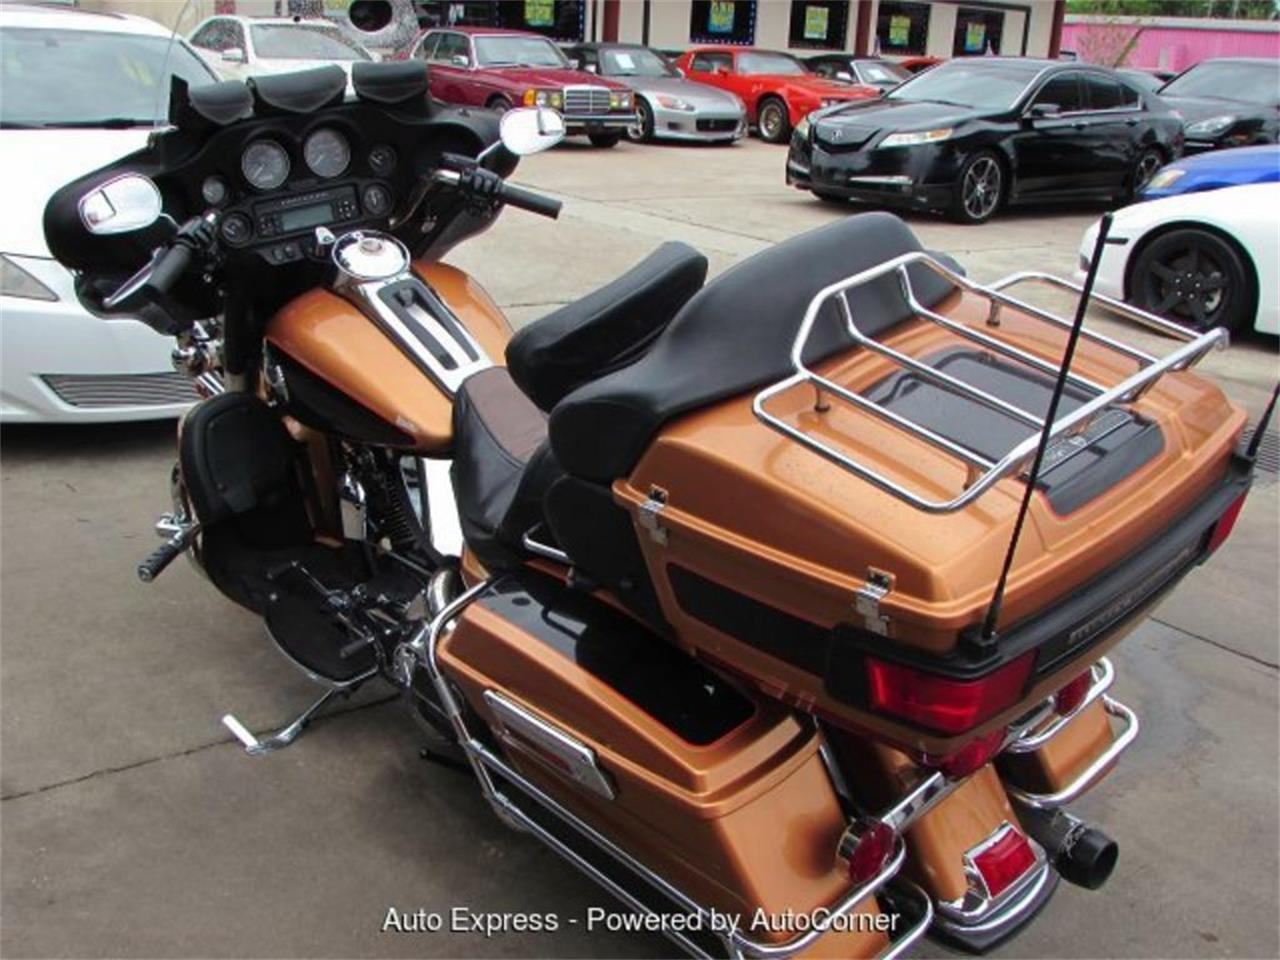 Large Picture of 2008 Electra Glide Offered by Auto Express - Q598